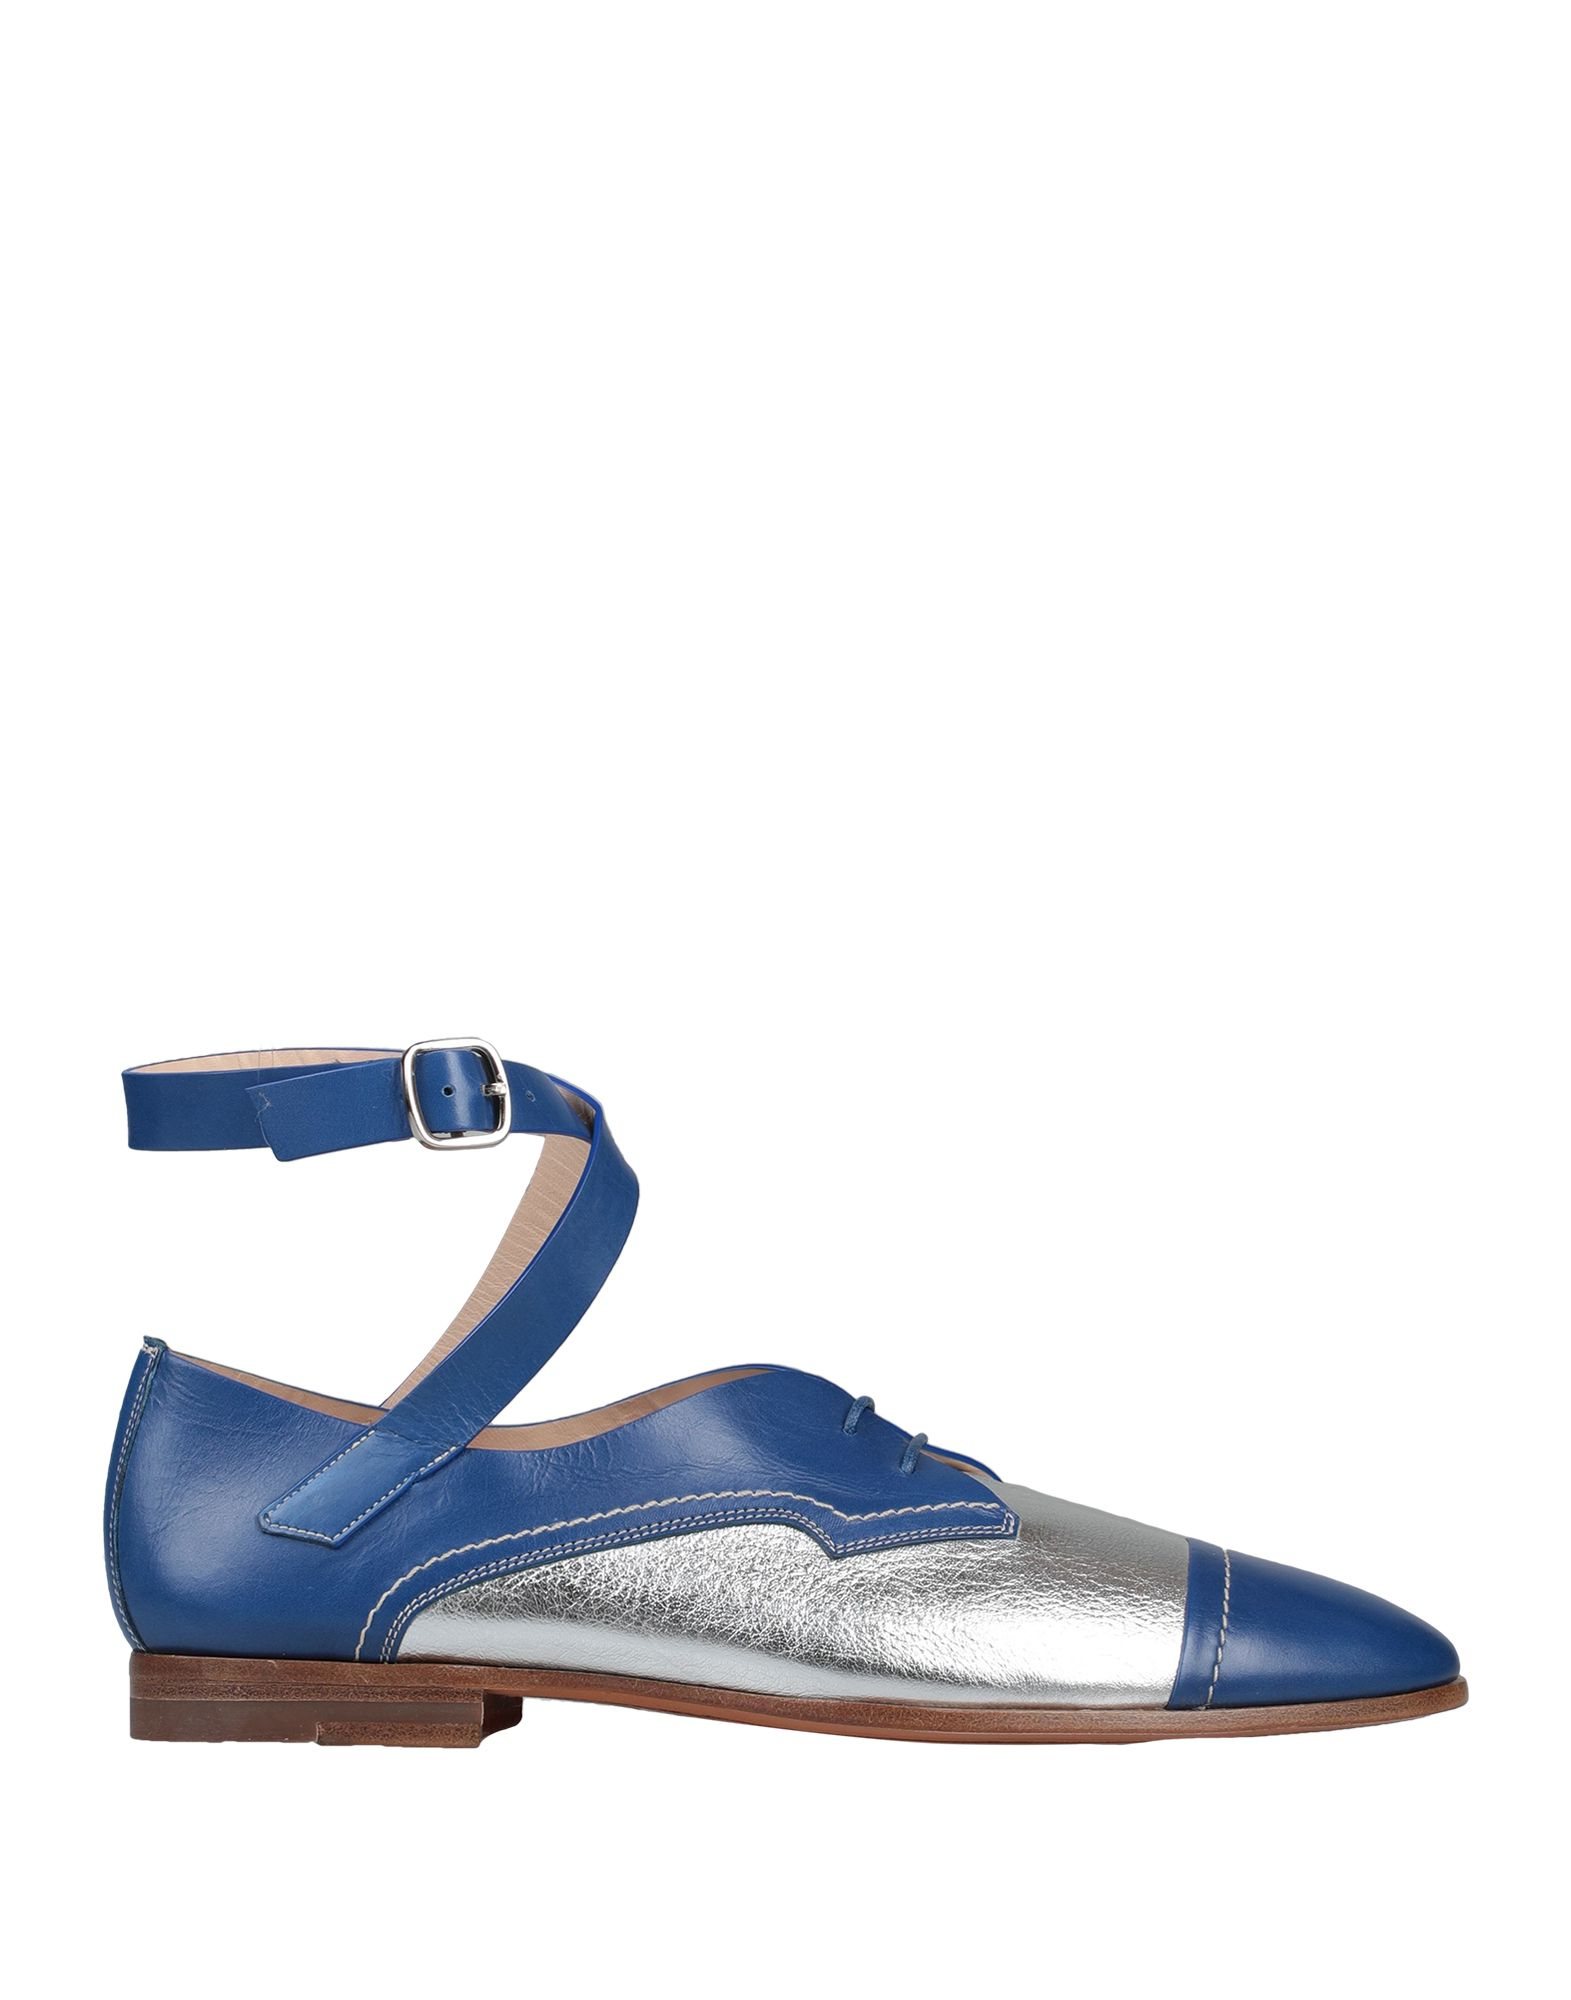 SANTONI Lace-up shoes. laminated effect, no appliqués, two-tone, buckling ankle strap closure, round toeline, flat, leather lining, leather/rubber sole, contains non-textile parts of animal origin, large sized. Soft Leather